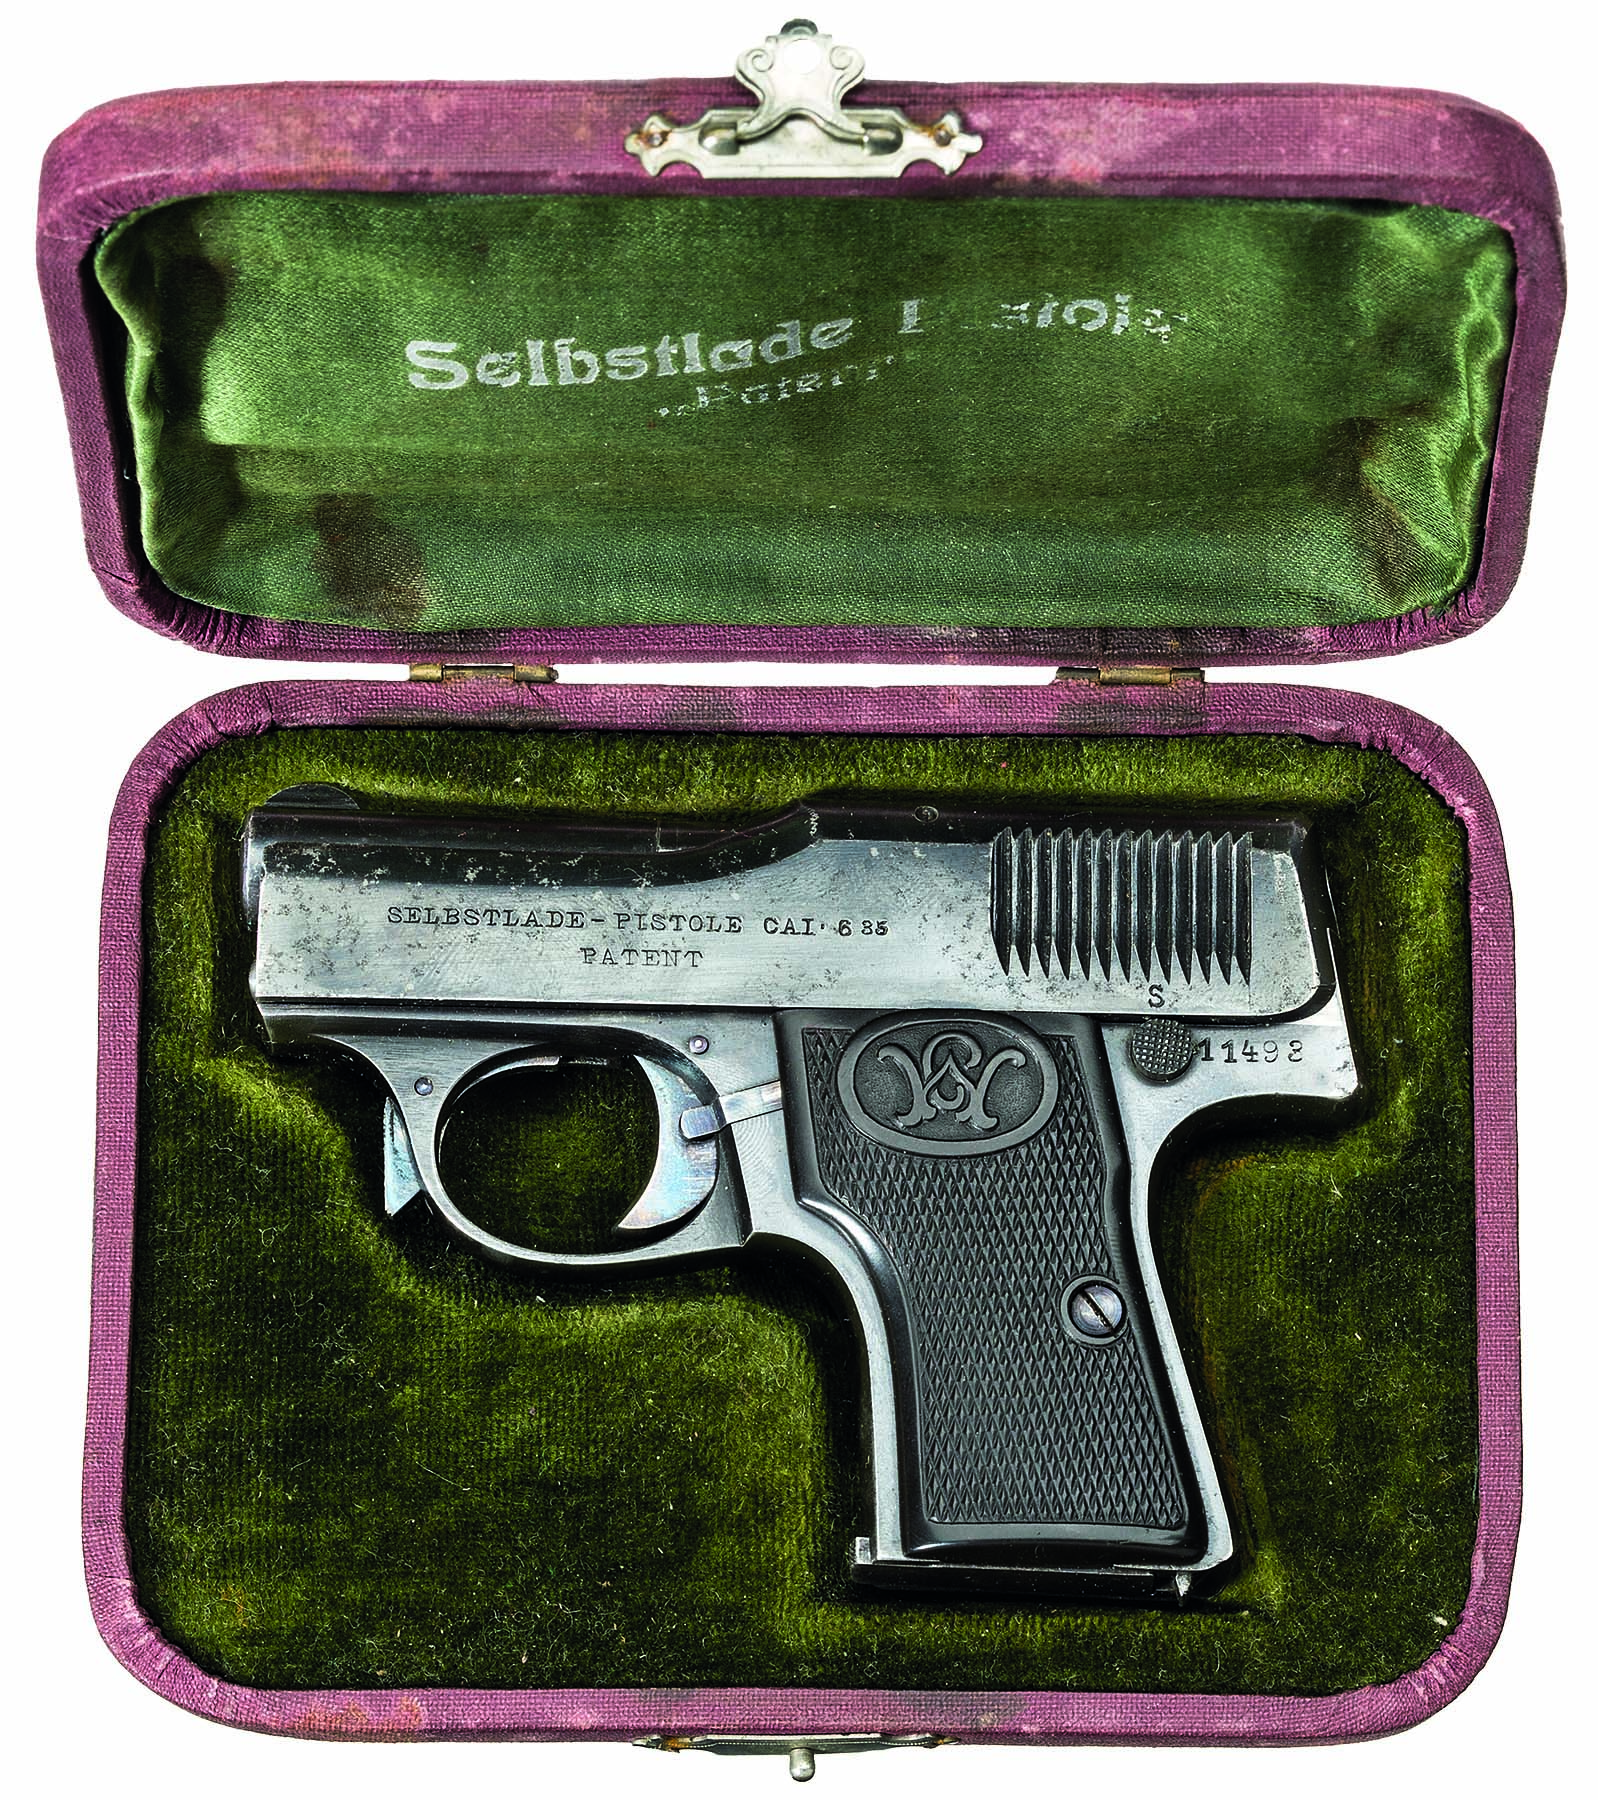 Walther model 1, caliber 6,35mm.